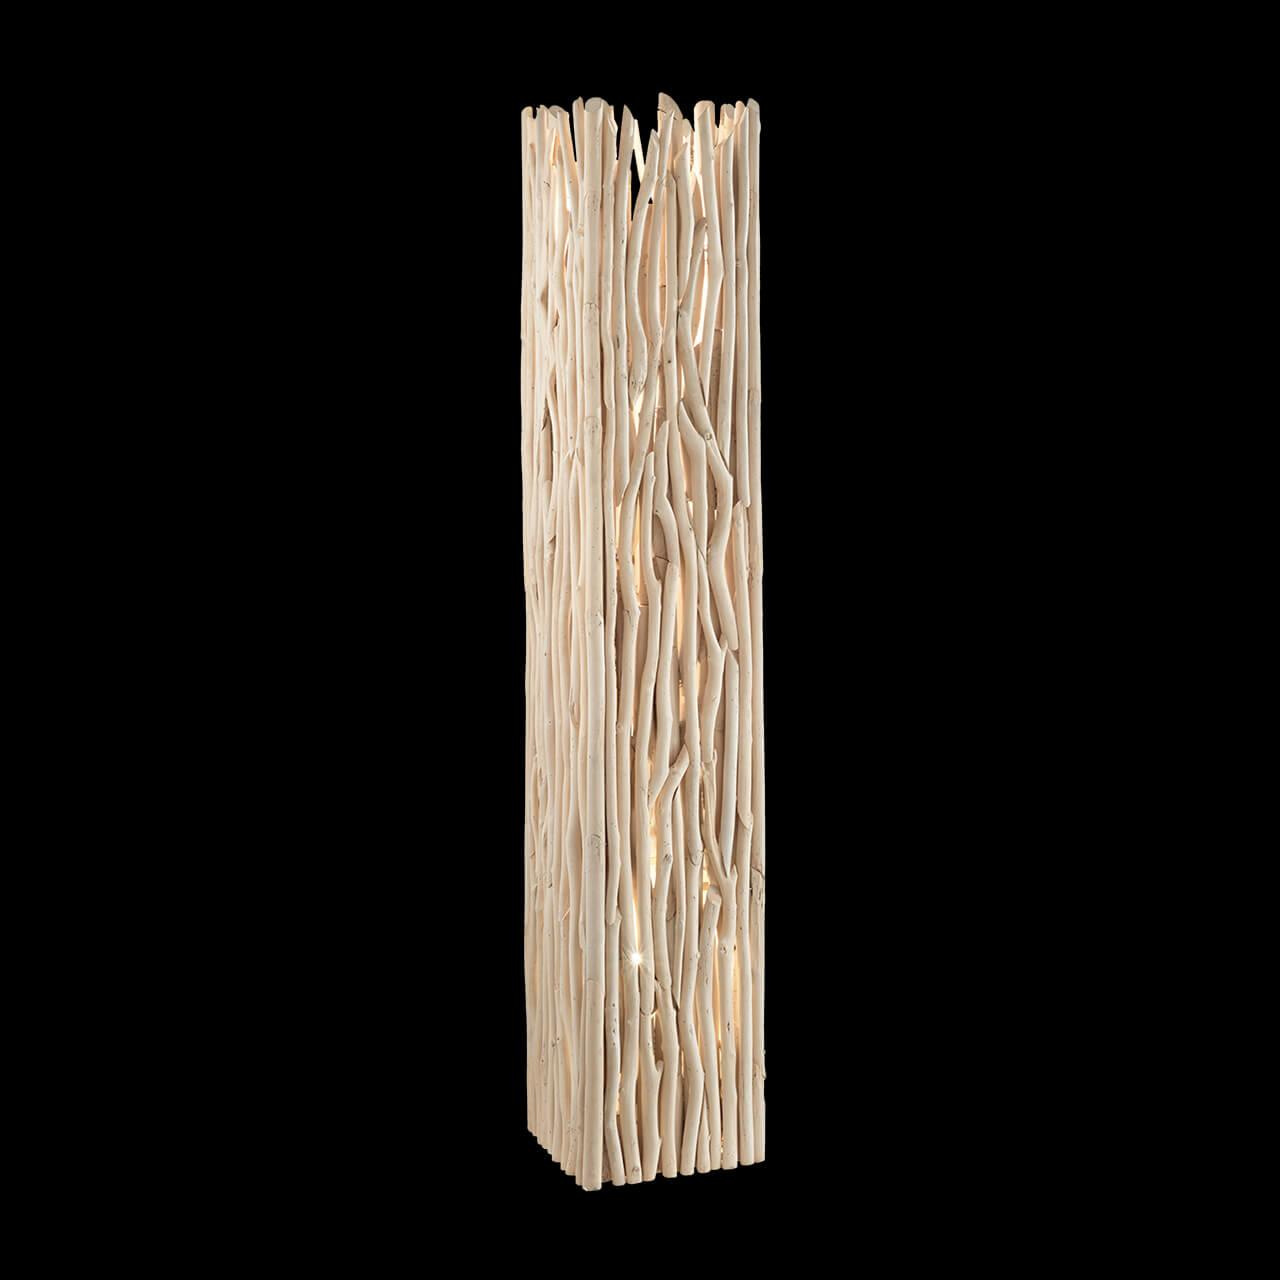 Торшер Ideal Lux Driftwood PT2 crystal lux торшер crystal lux jewel pt2 wh